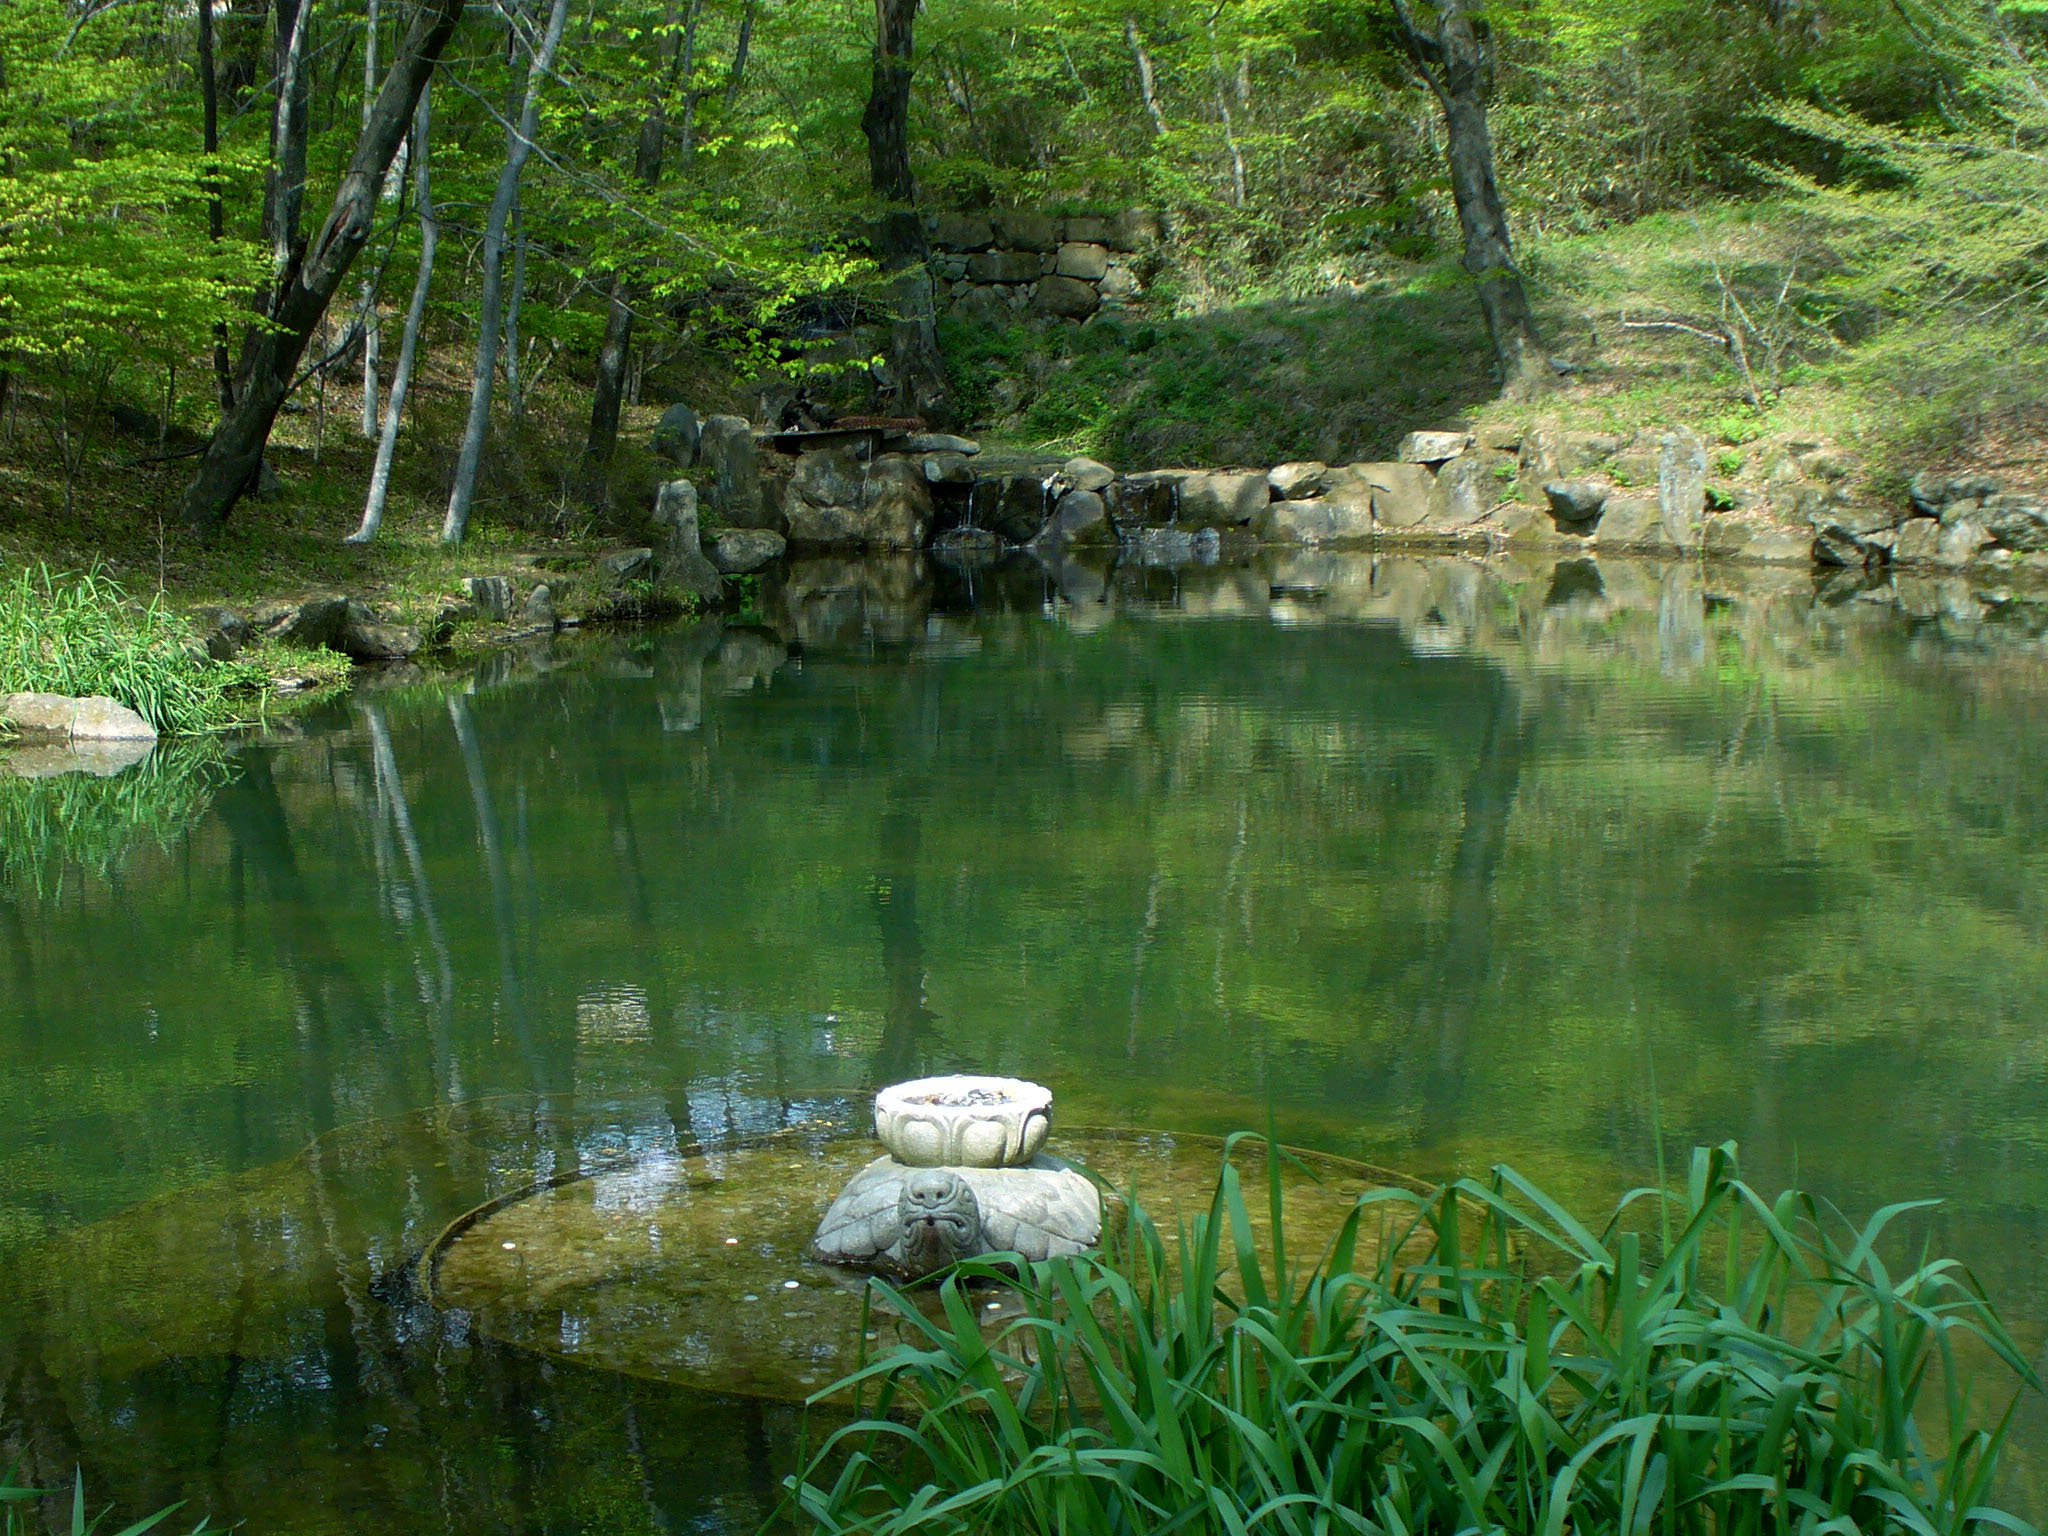 File:Haeinsa-monastery-pond-of-reflection.jpg